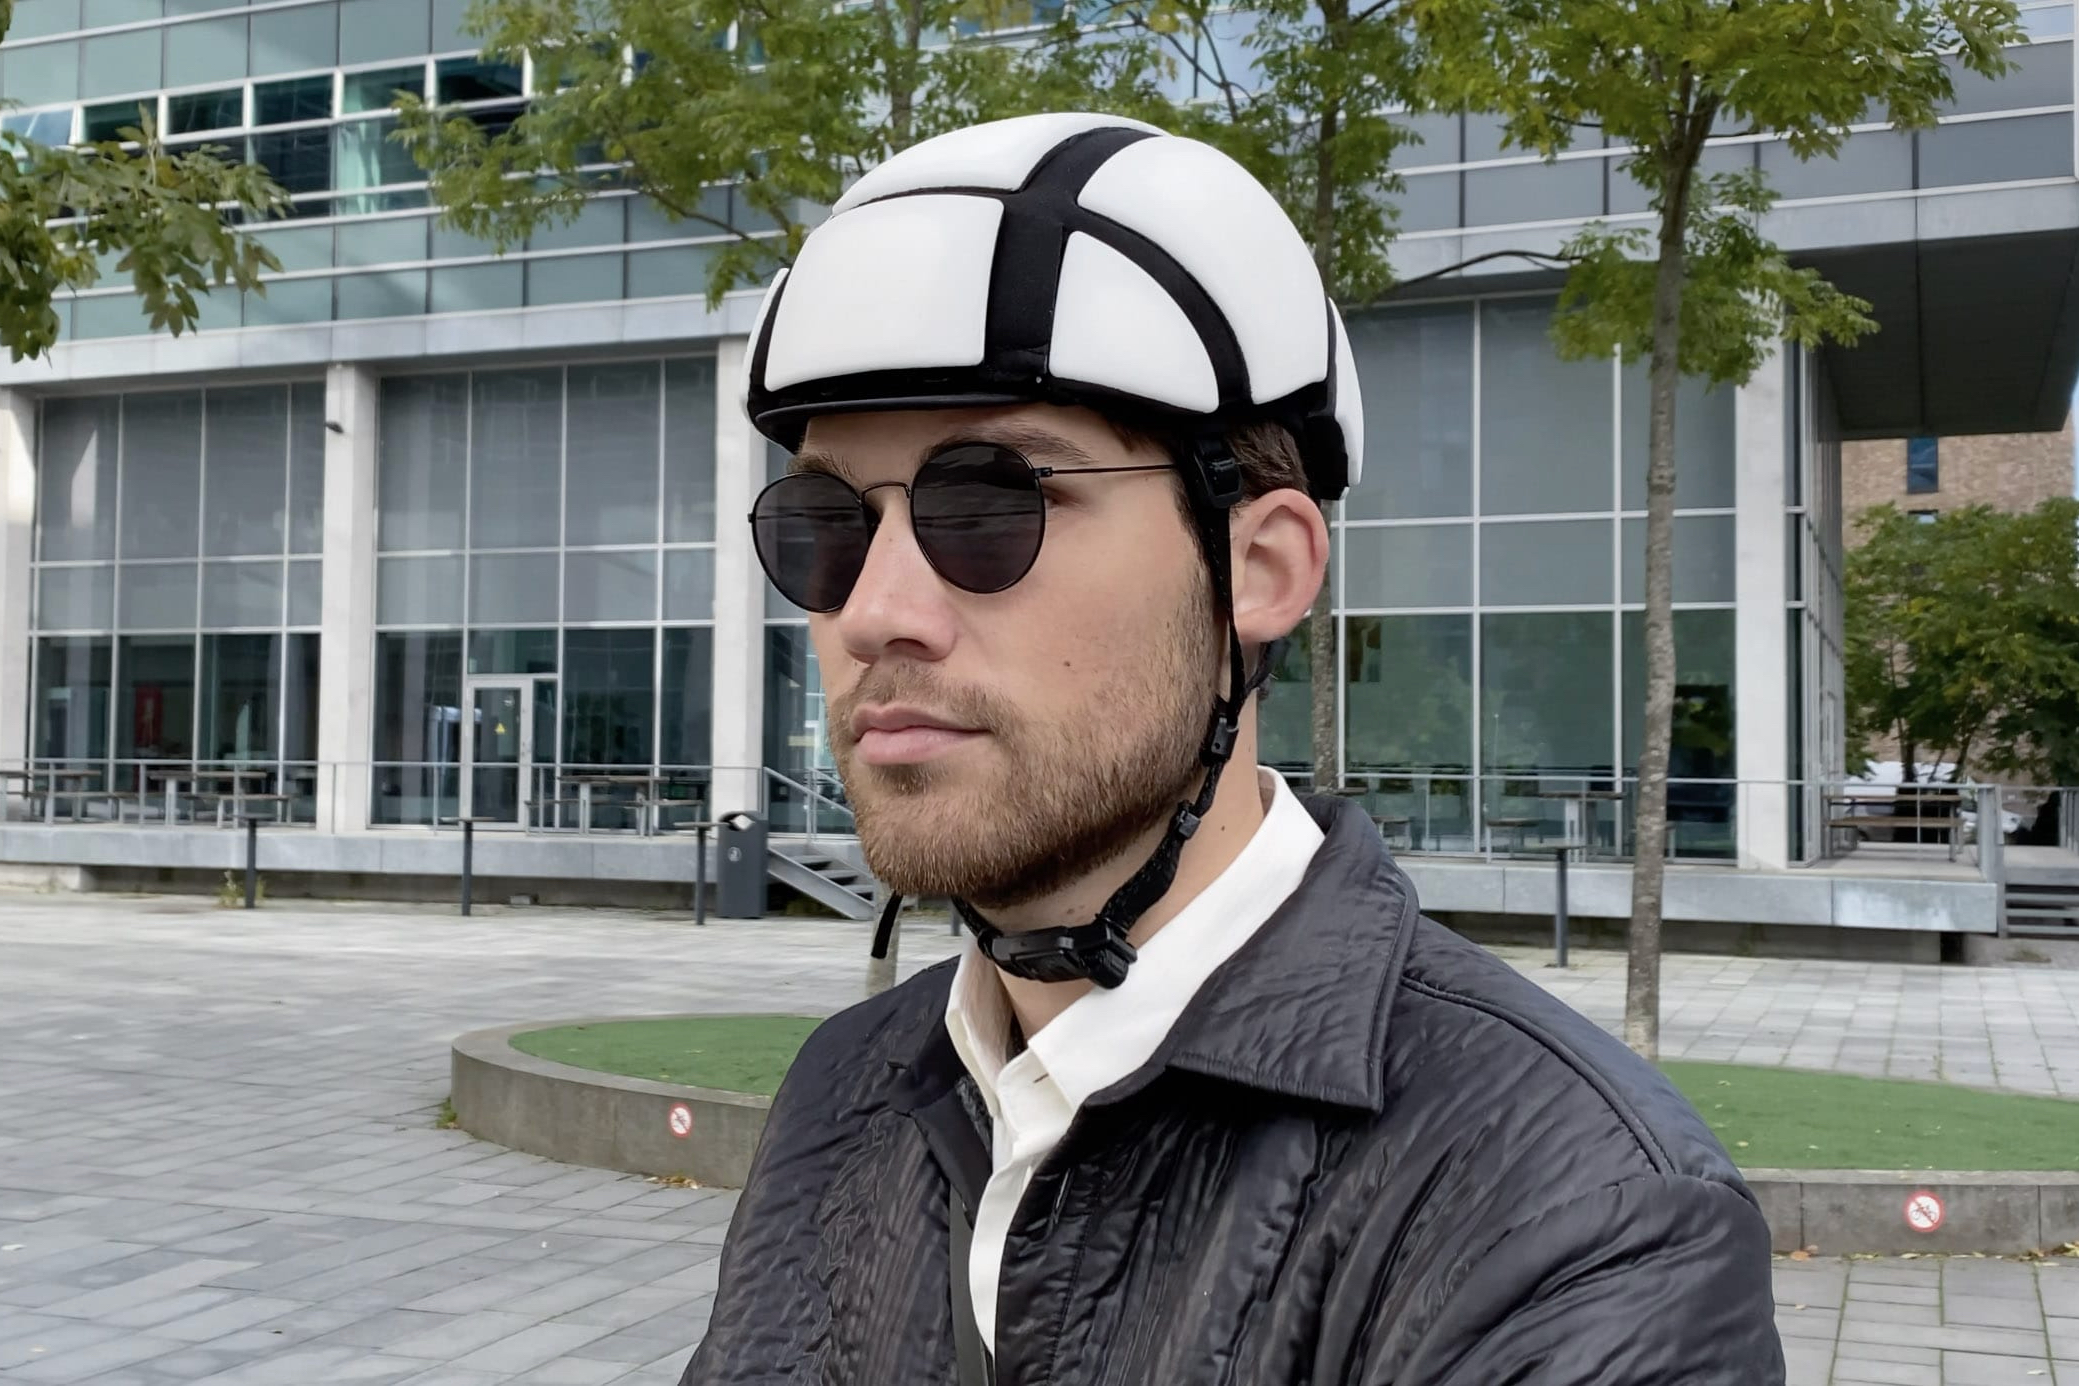 The Newton-Rider helmet is presently on Indiegogo